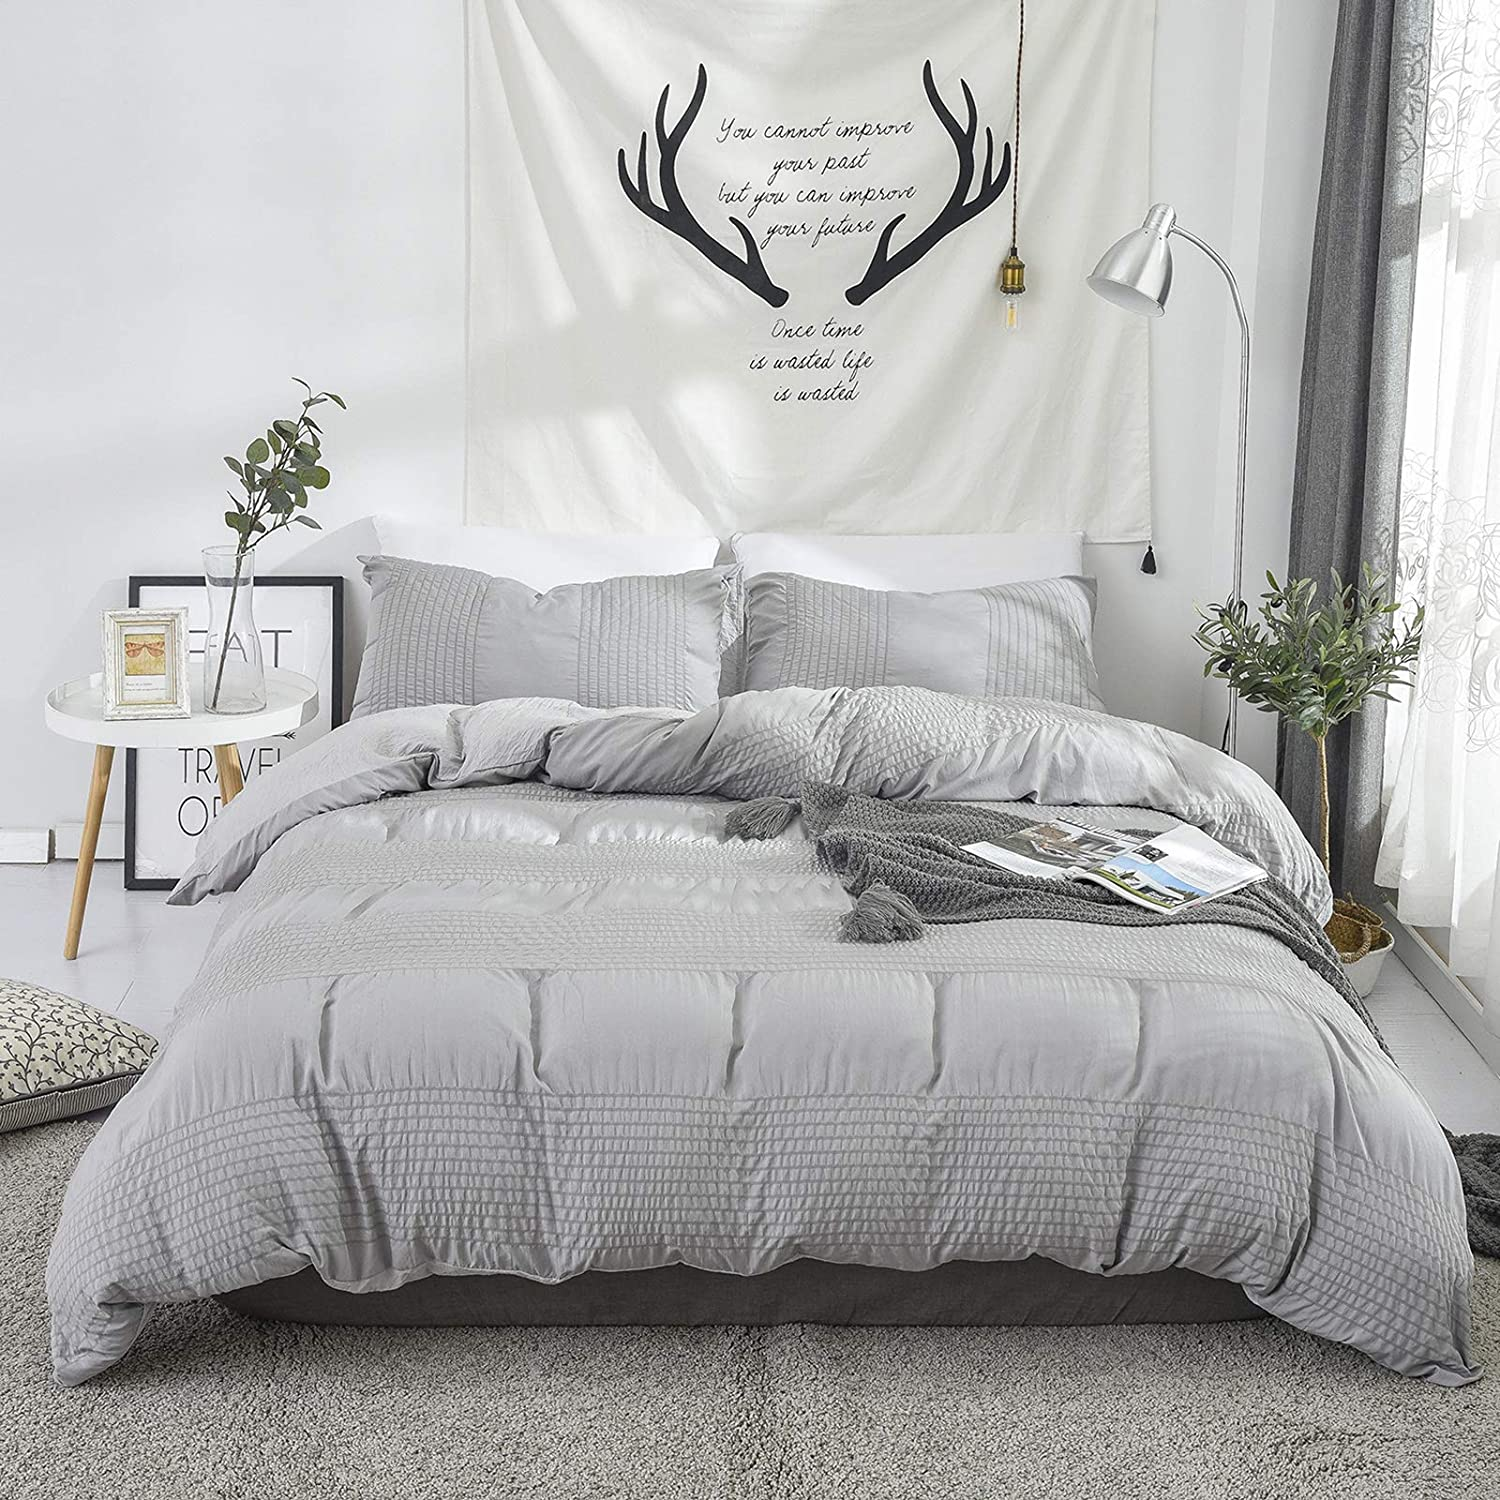 XingShow Max 67% OFF Stripe Duvet Cover Set Queen Solid Wash Cotto Japan's largest assortment Gray Soft